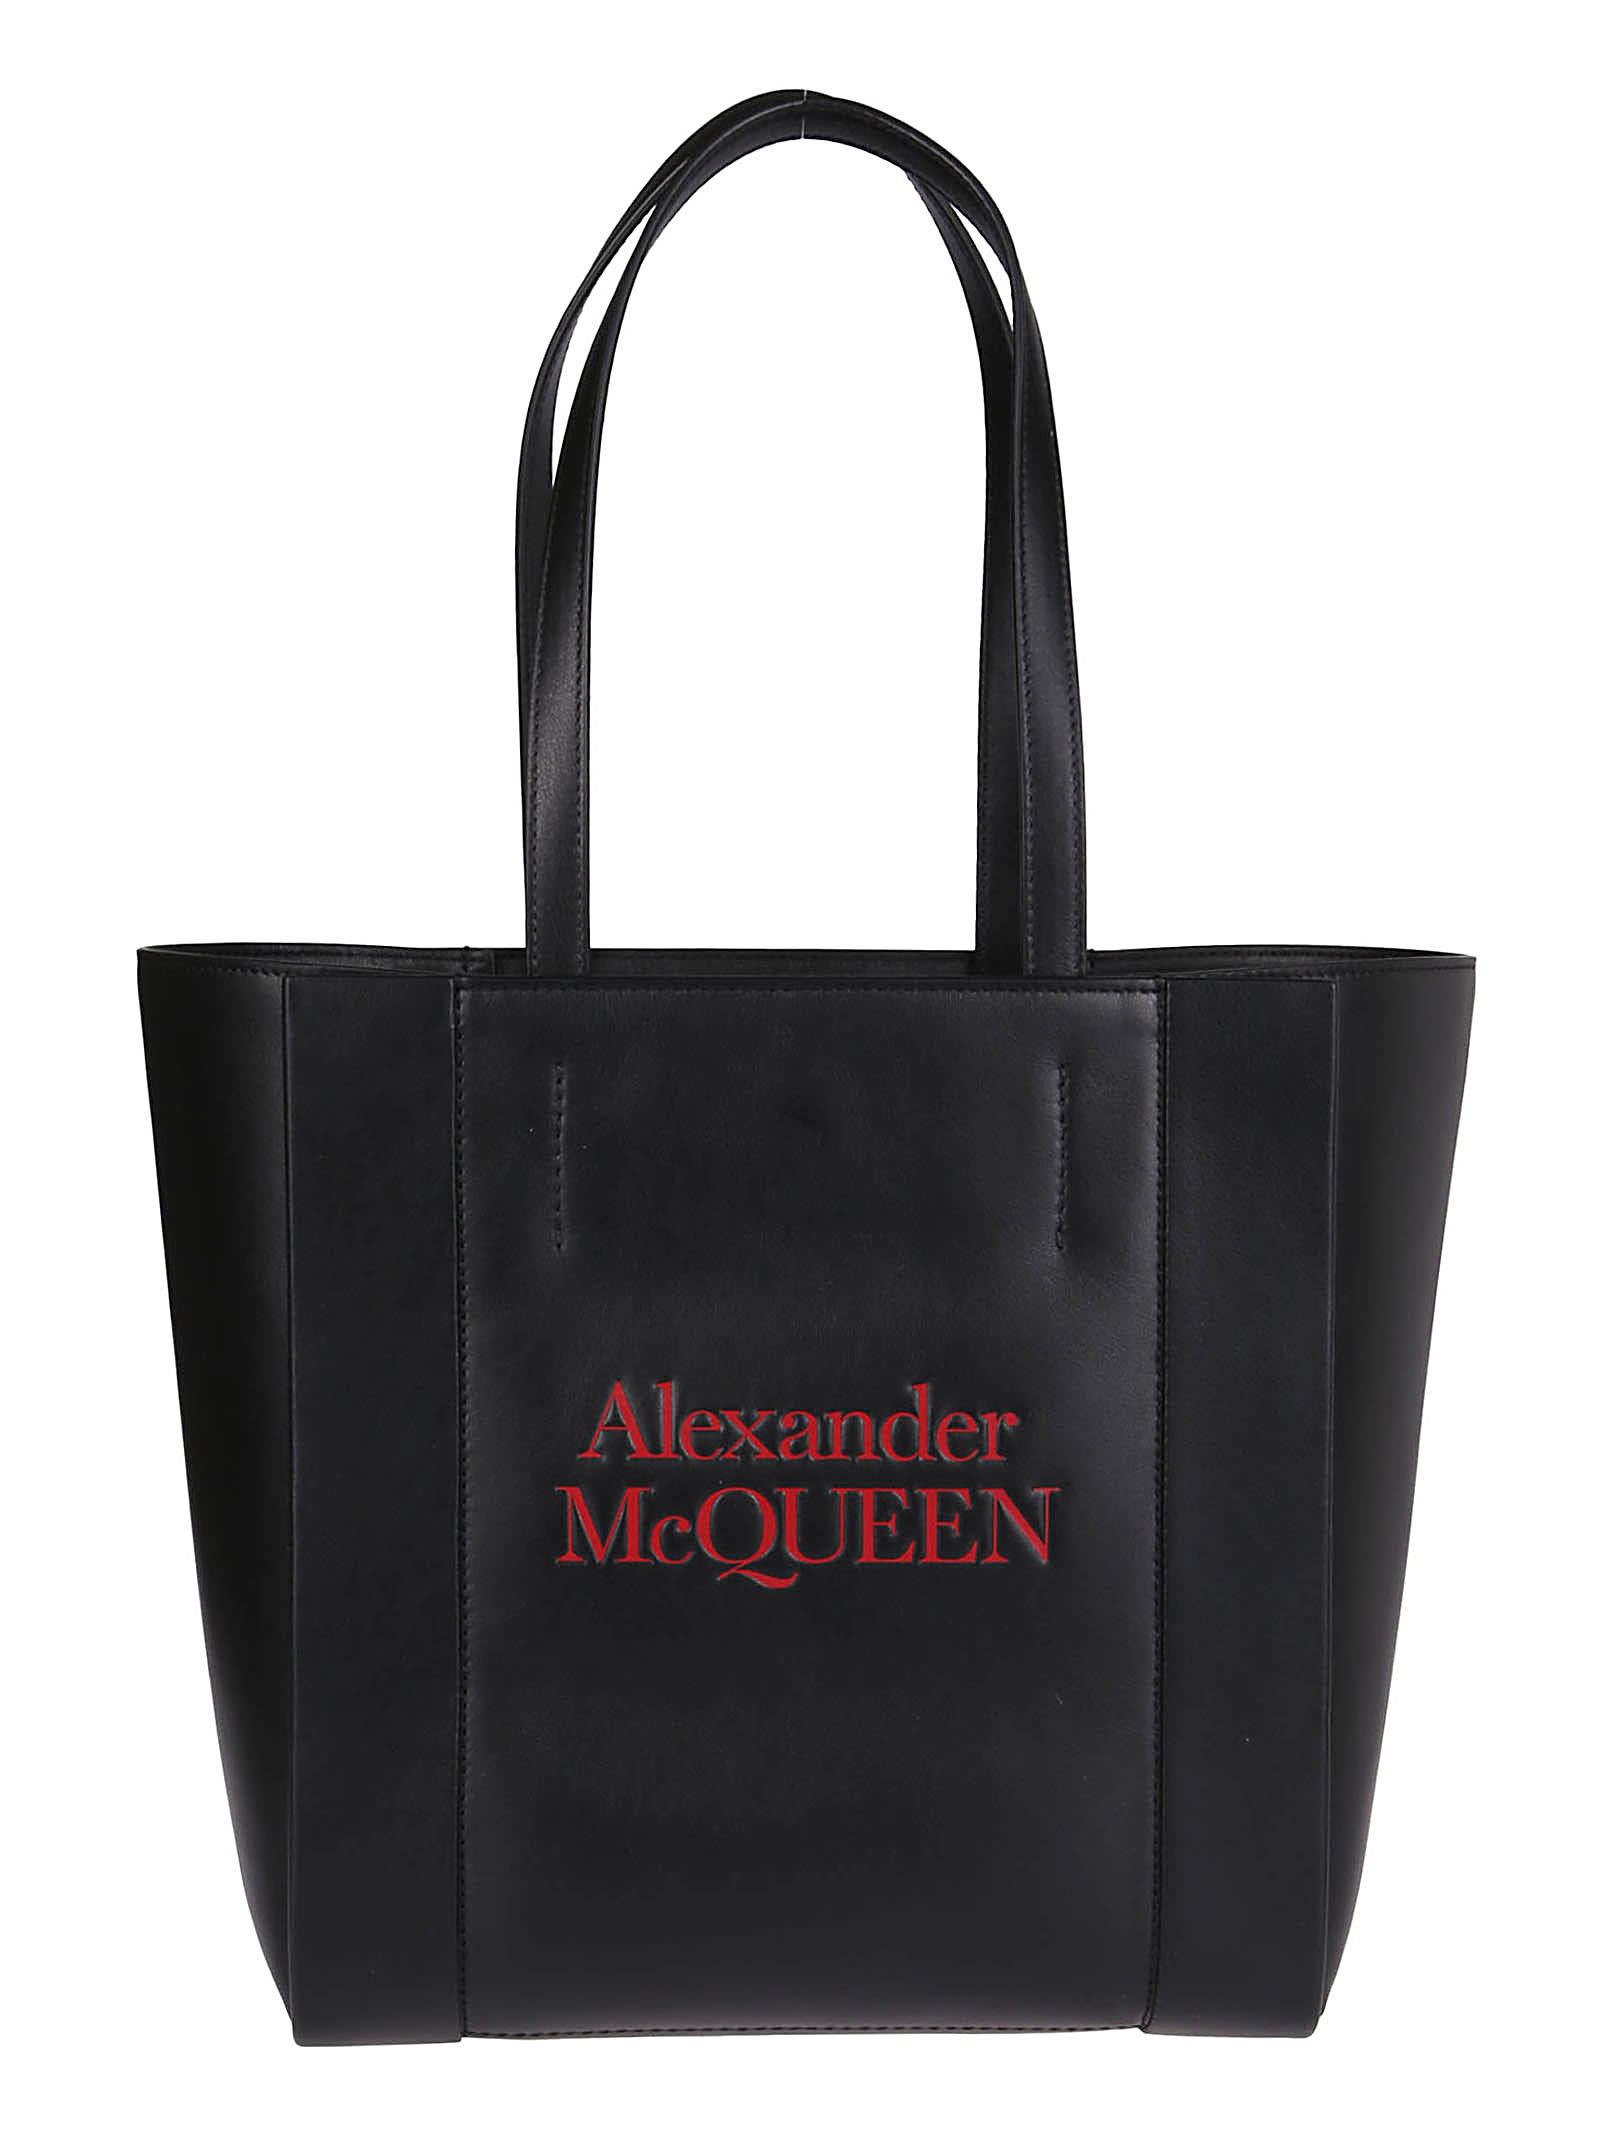 Alexander Mcqueen Black Signature Leather Tote Bag In Black Red